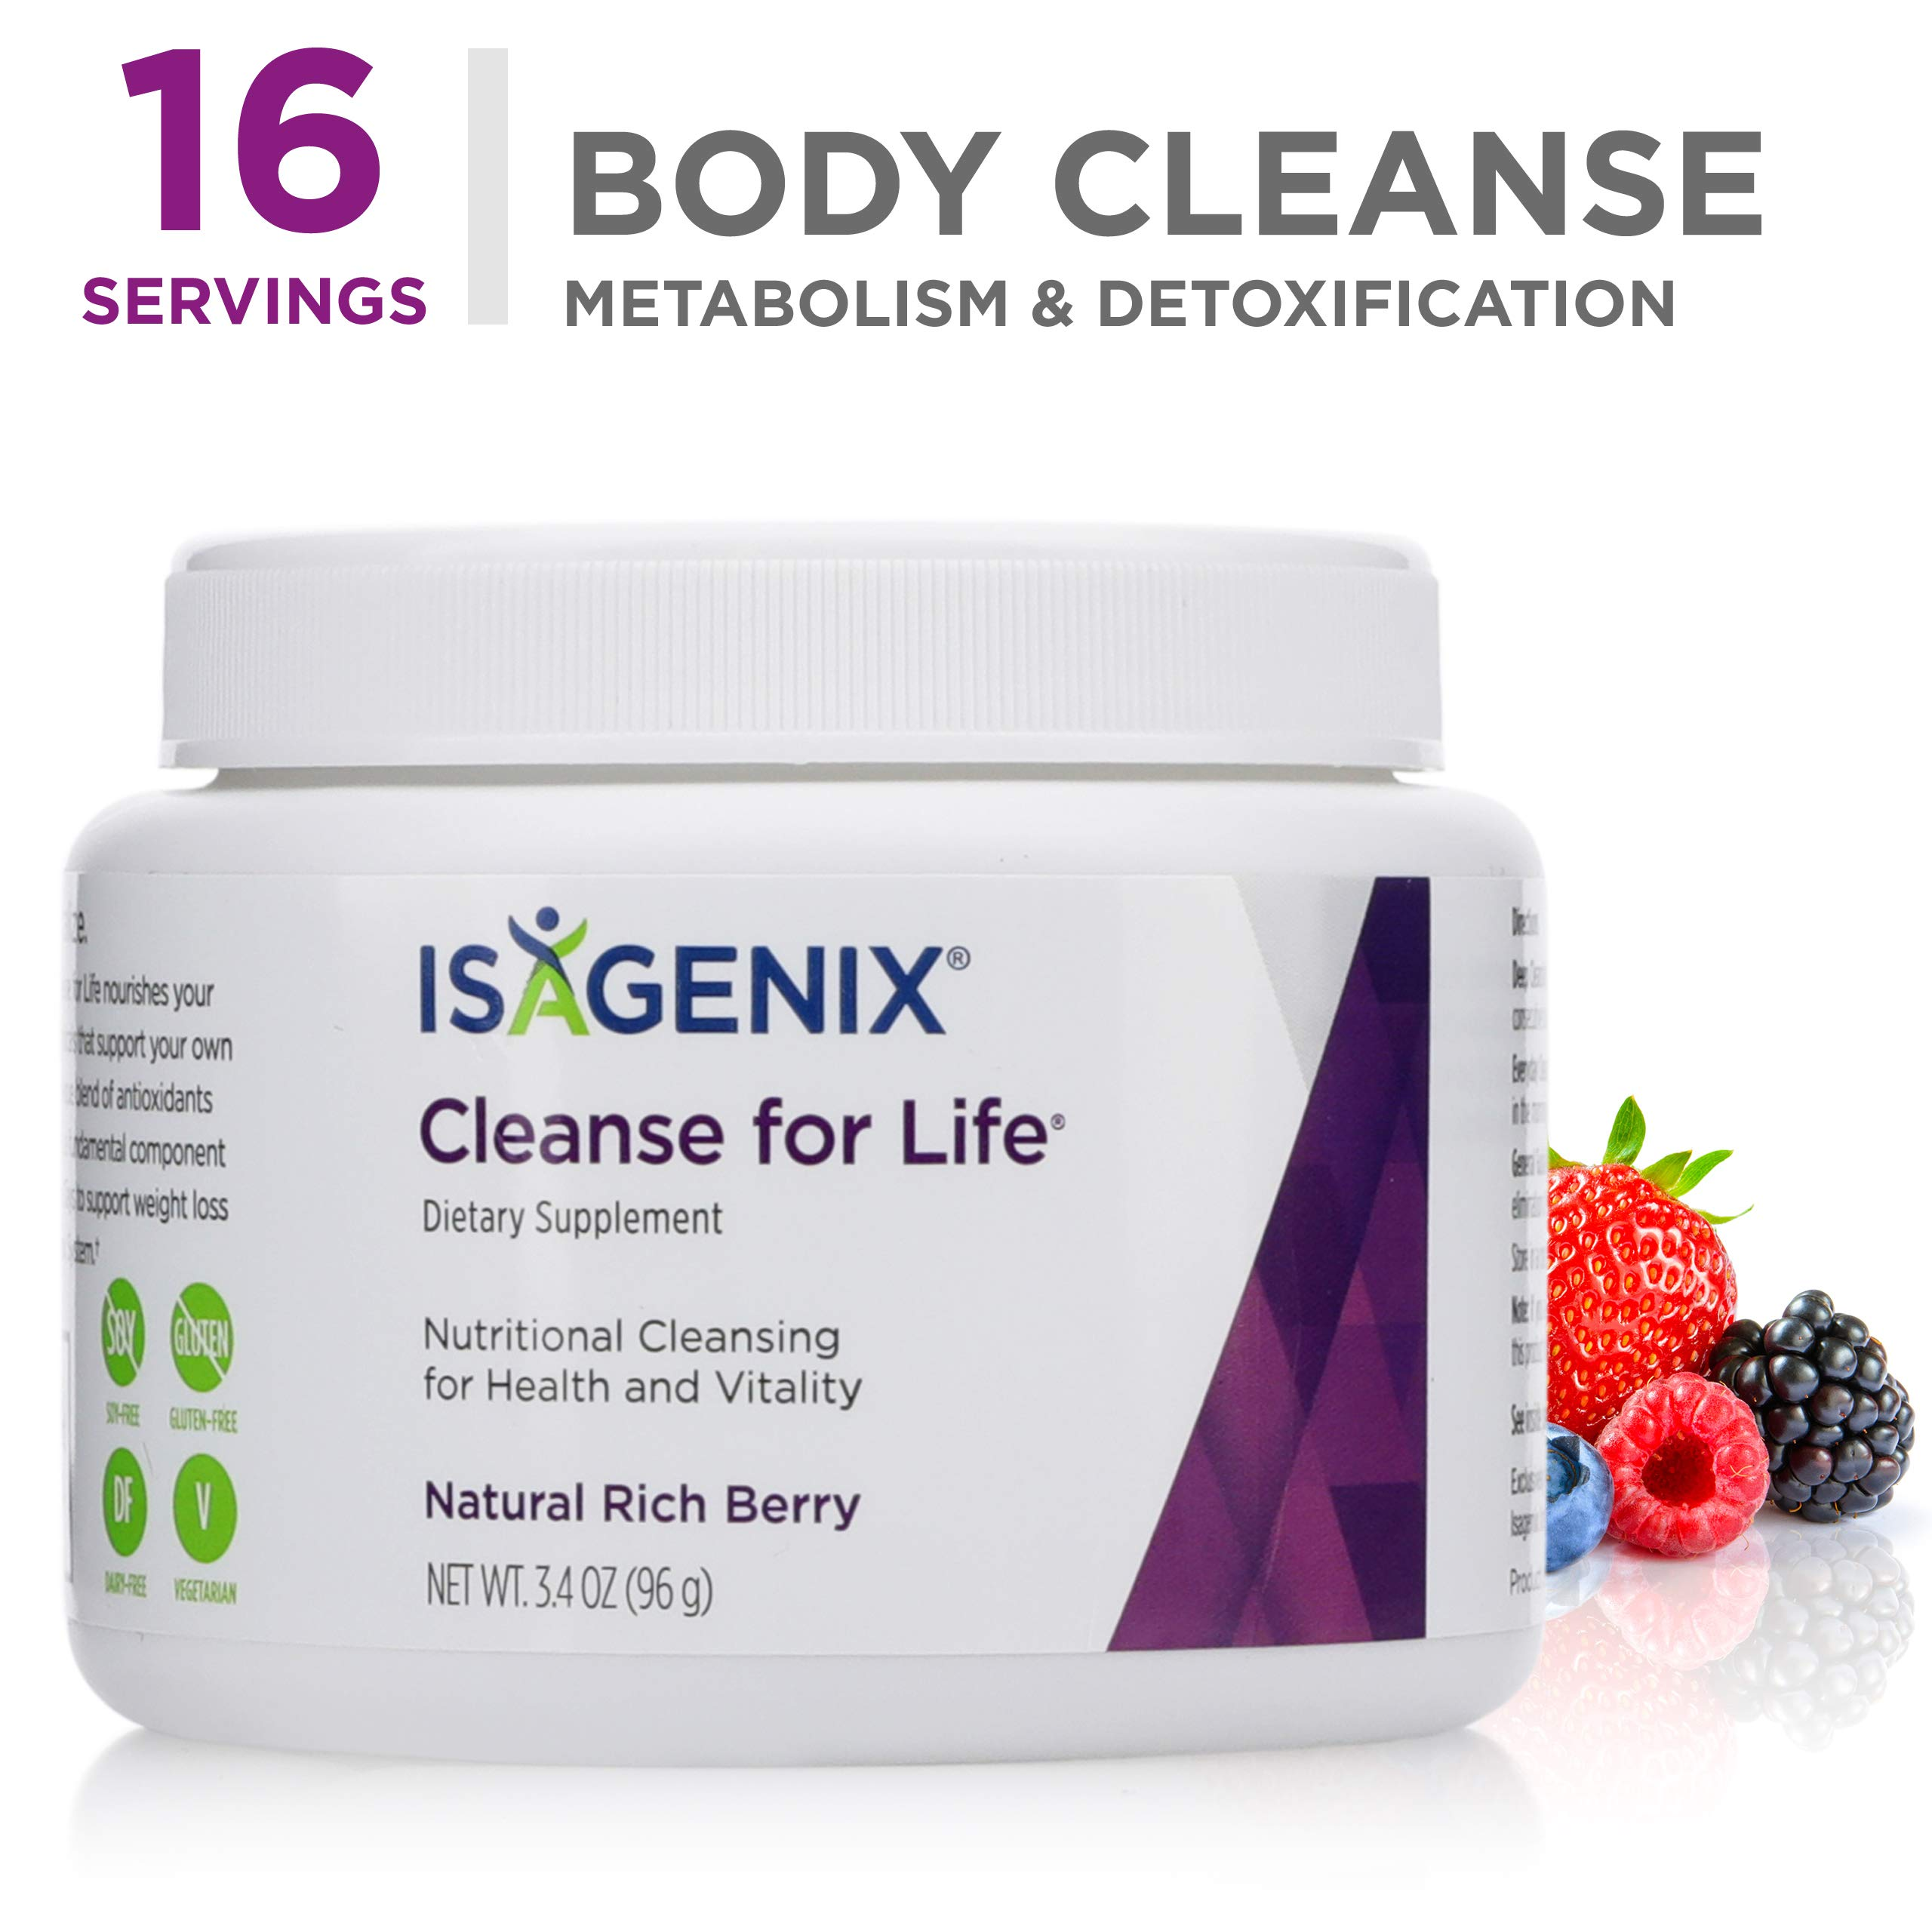 Cleanse for Life® - Natural Rich Berry Flavor Powder - 96 g (3.4 Ounce) Canister by Isagenix